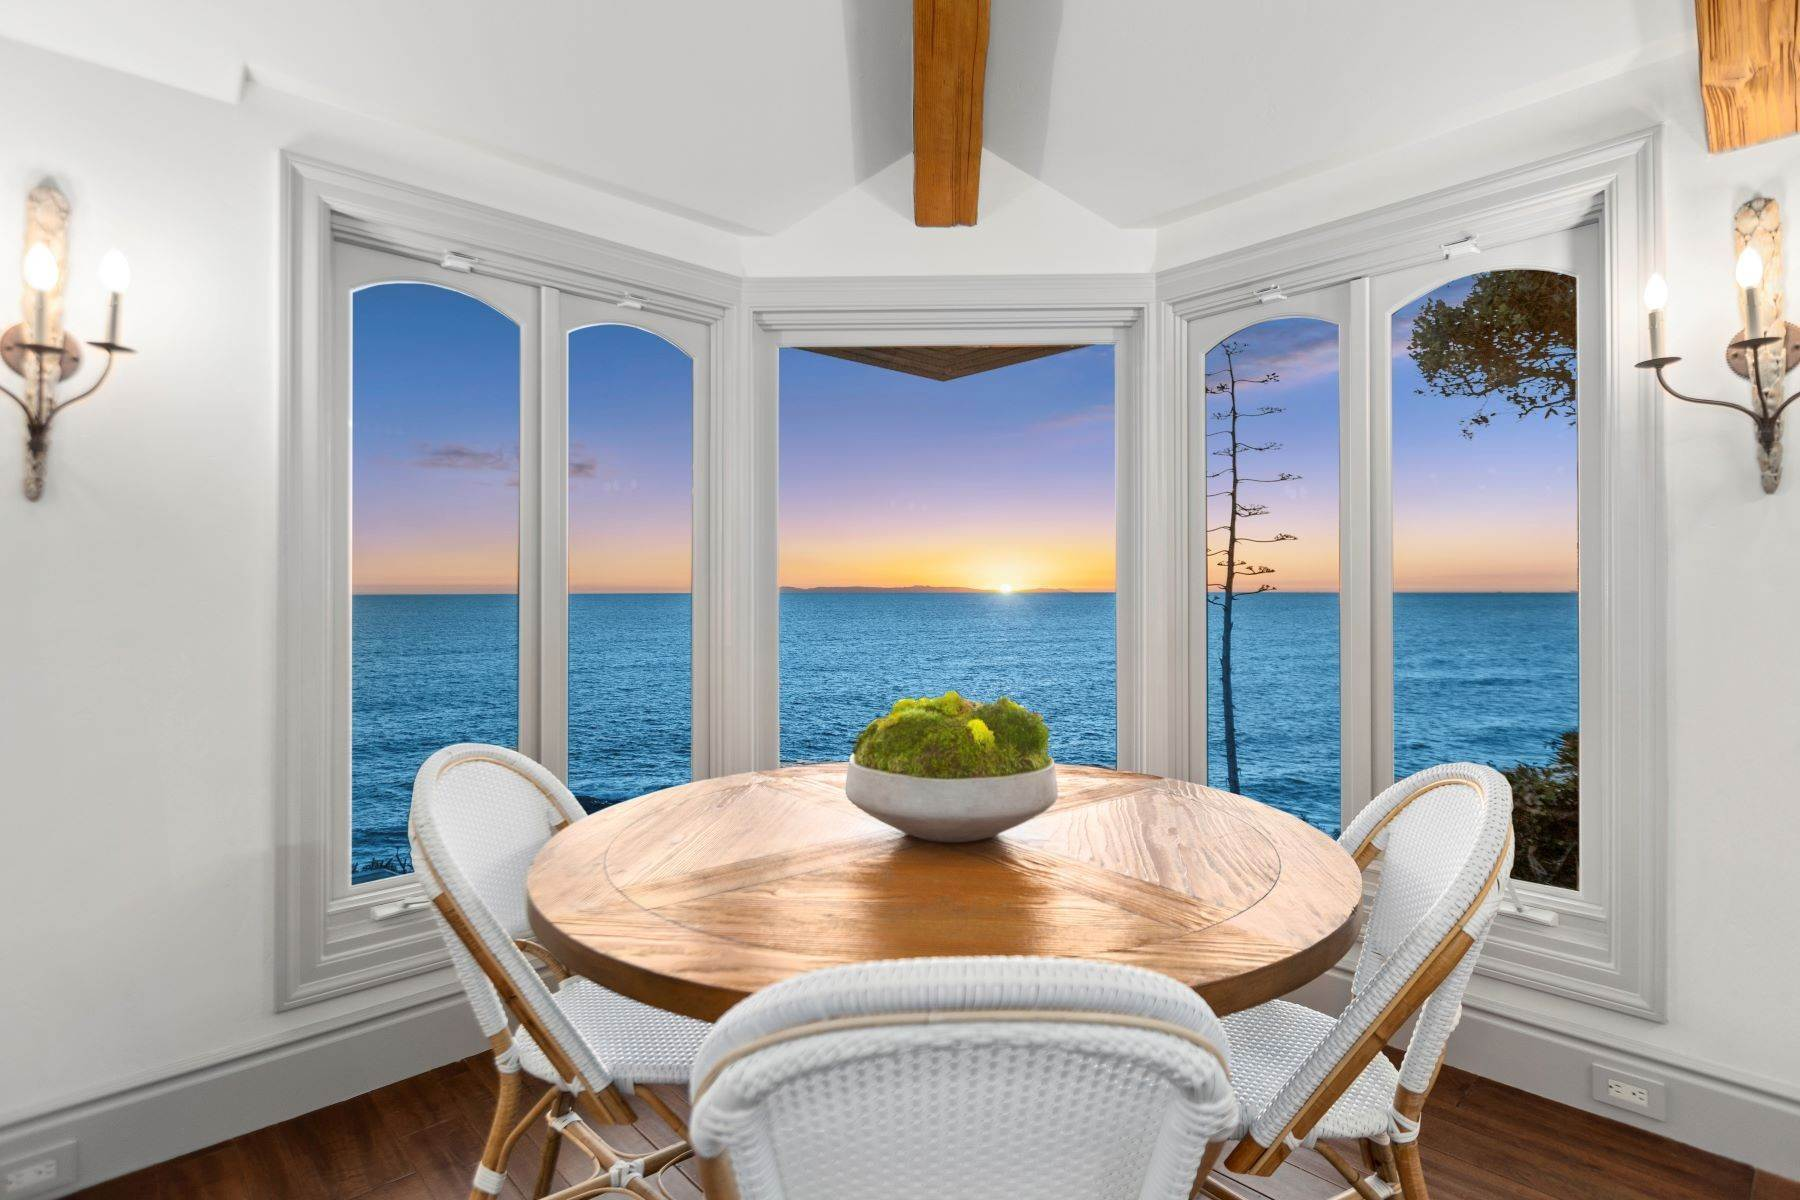 2. Single Family Homes for Sale at 31521 Bluff Drive Laguna Beach, California 92651 United States